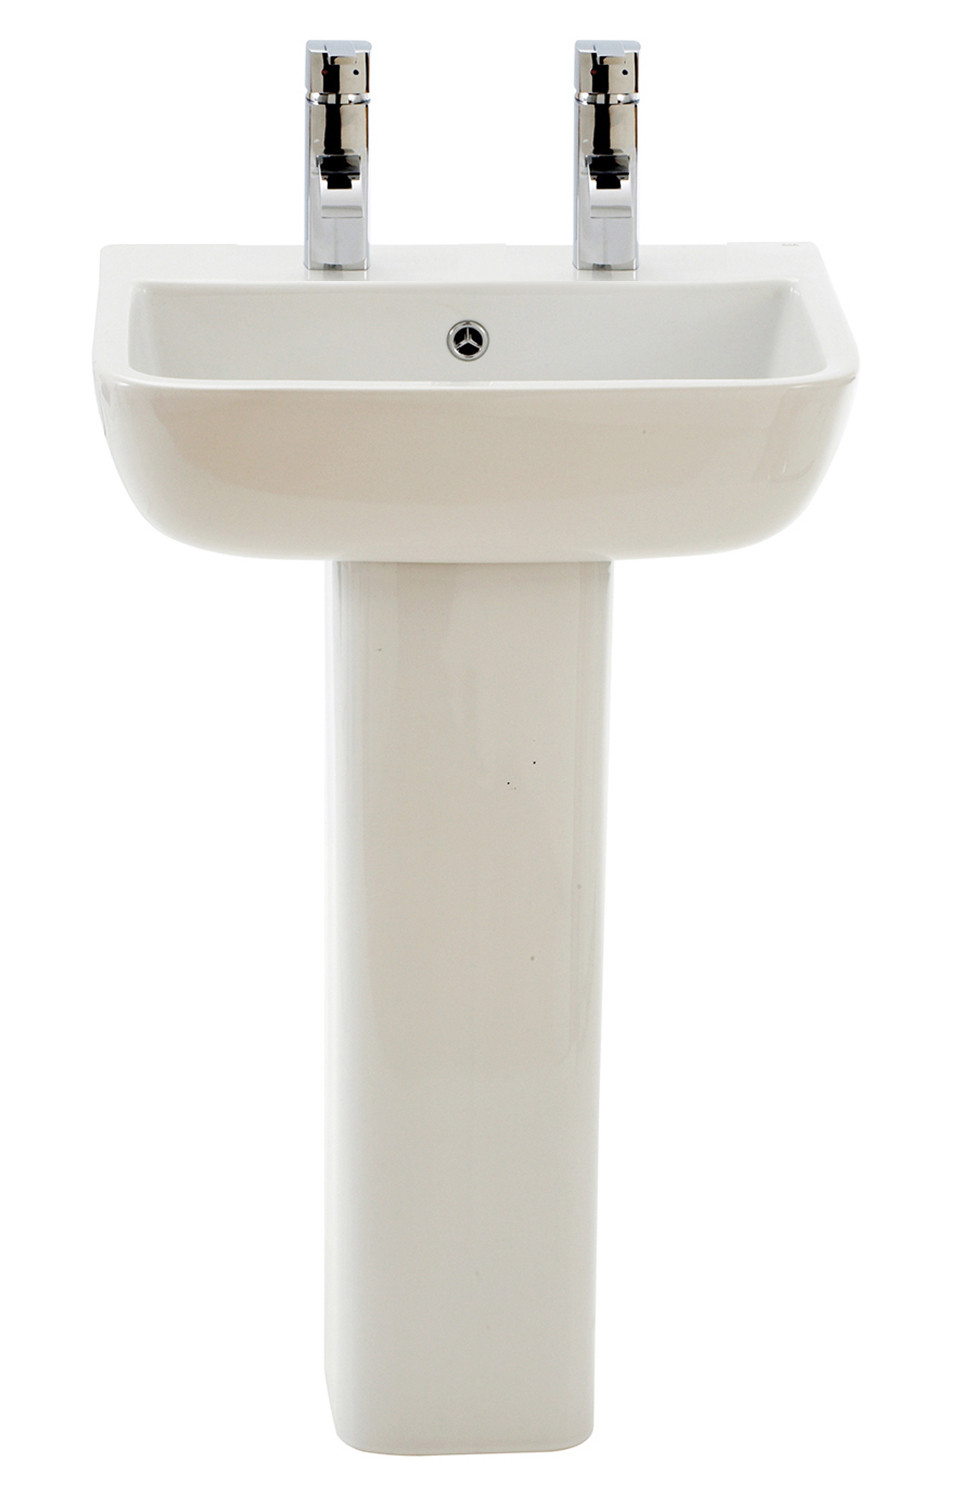 Series 600 Full Pedestal Basin - 2 Tap Holes